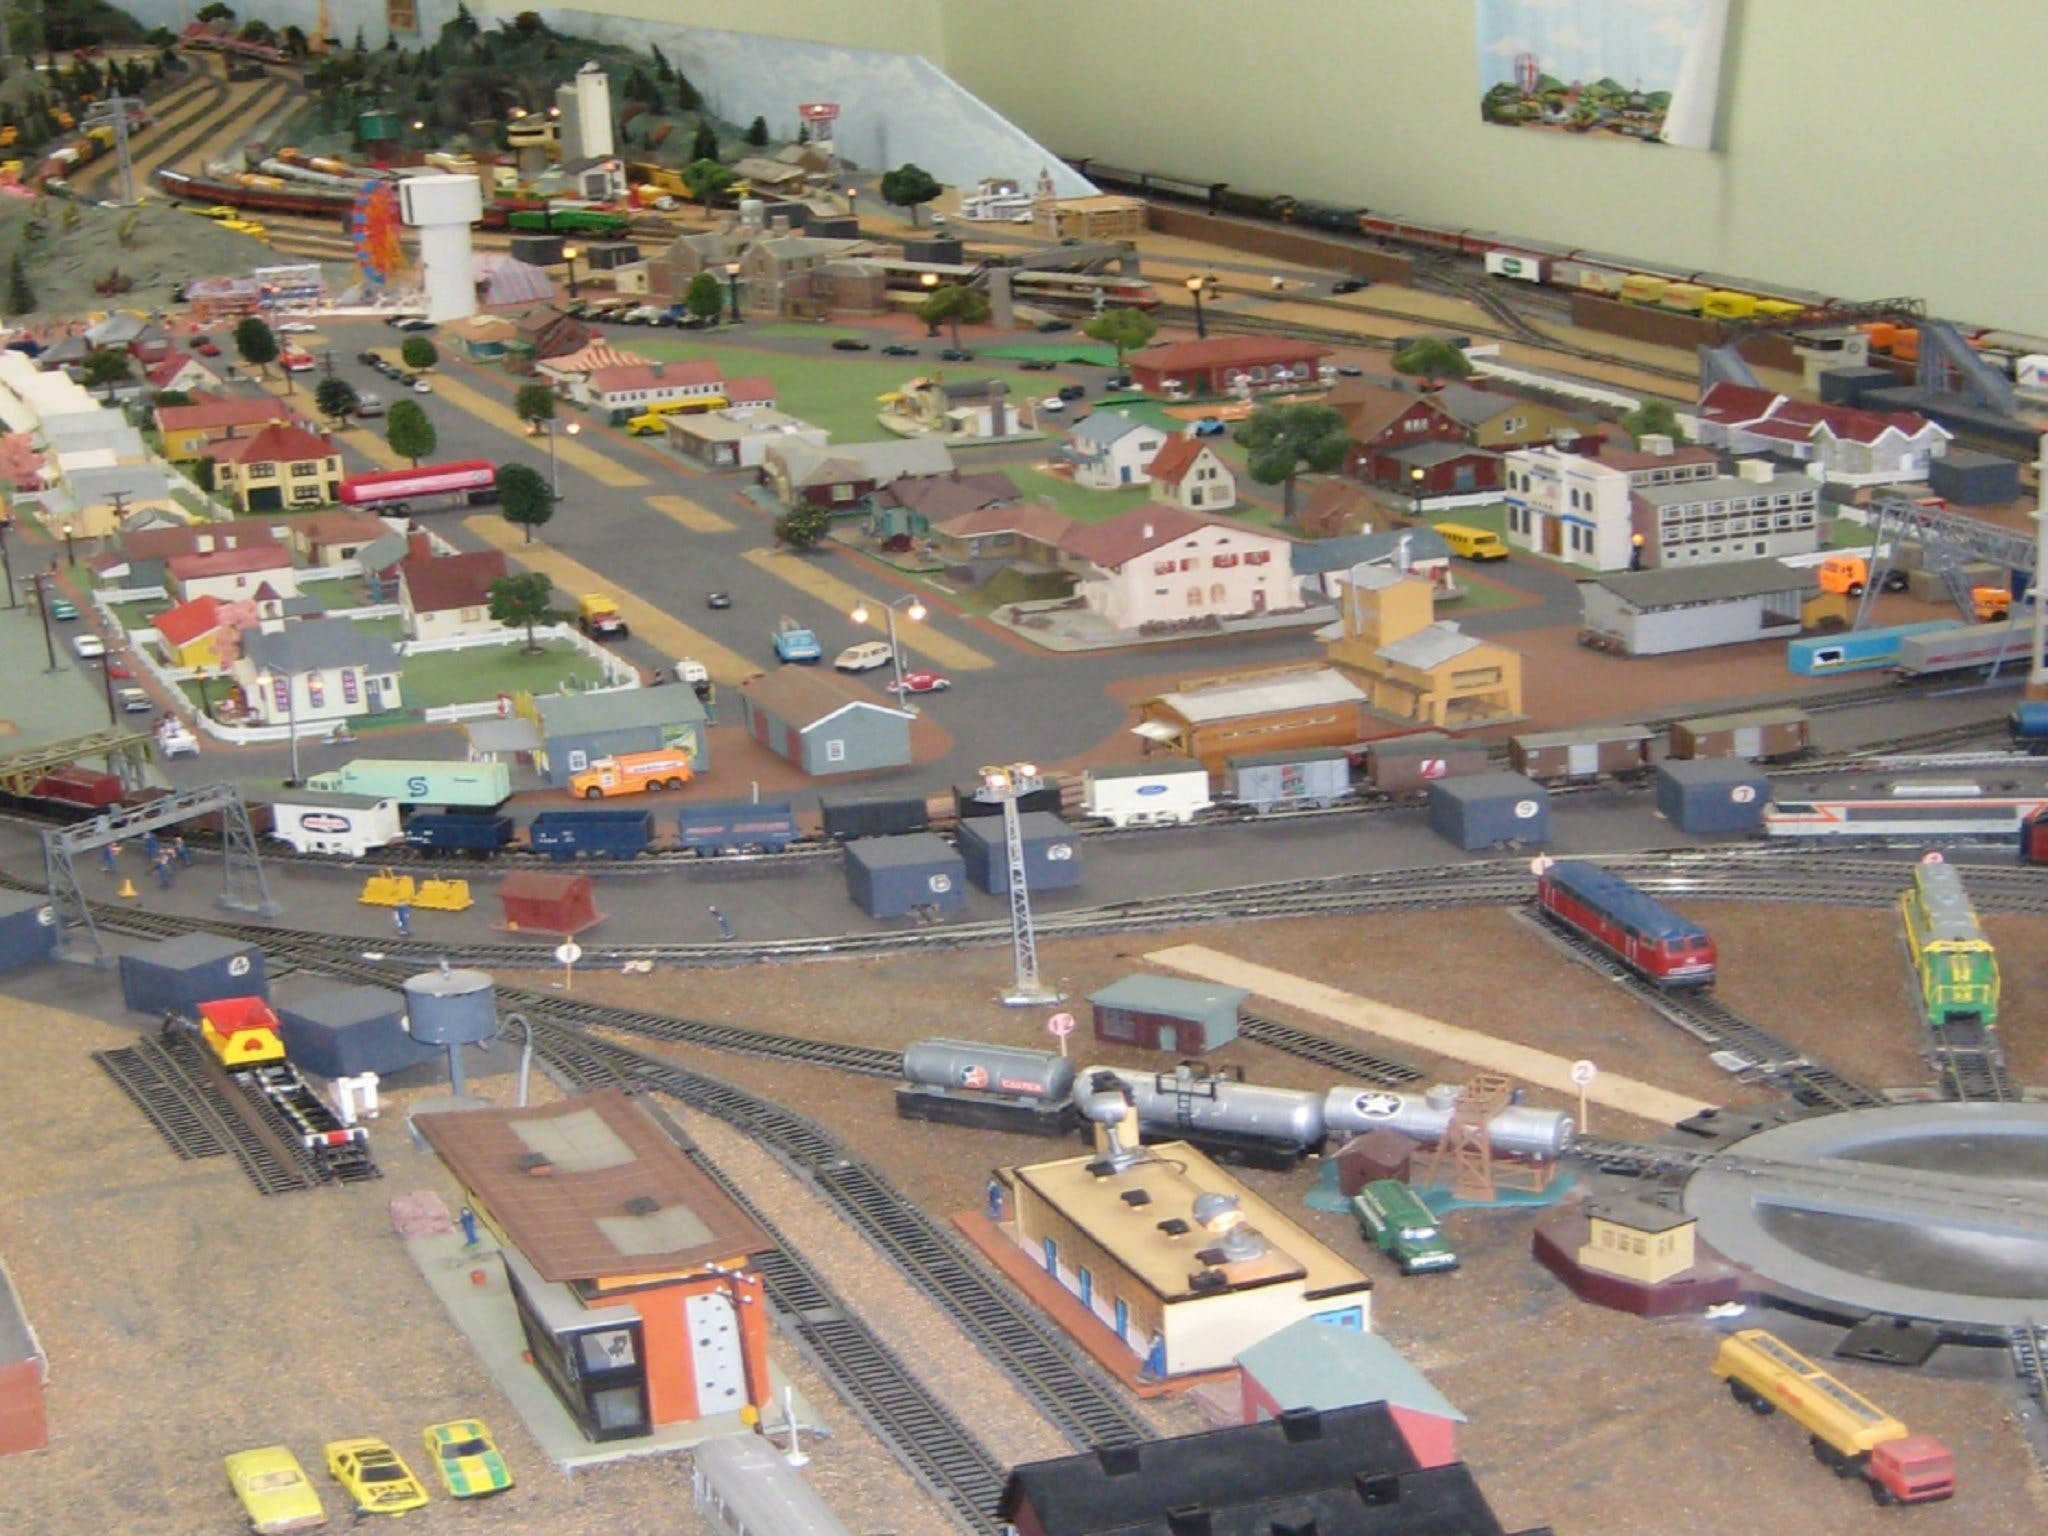 Heywood Model Trains - Surfers Gold Coast